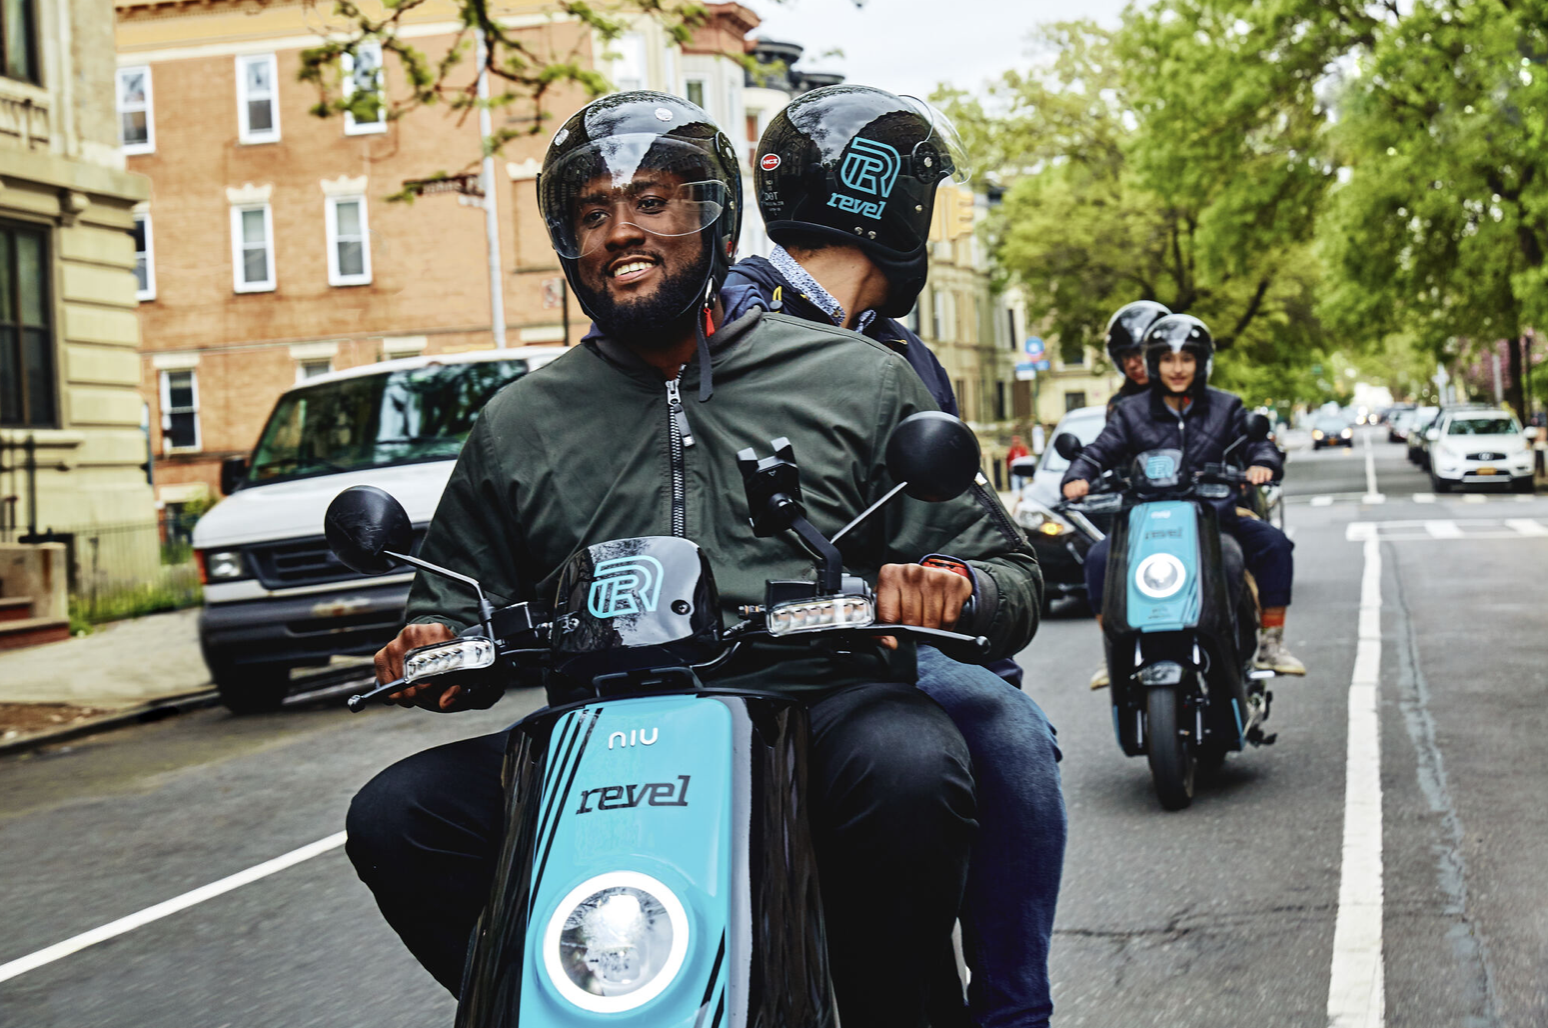 Goodbye, Scooter-Sharing. Hello Mopeds